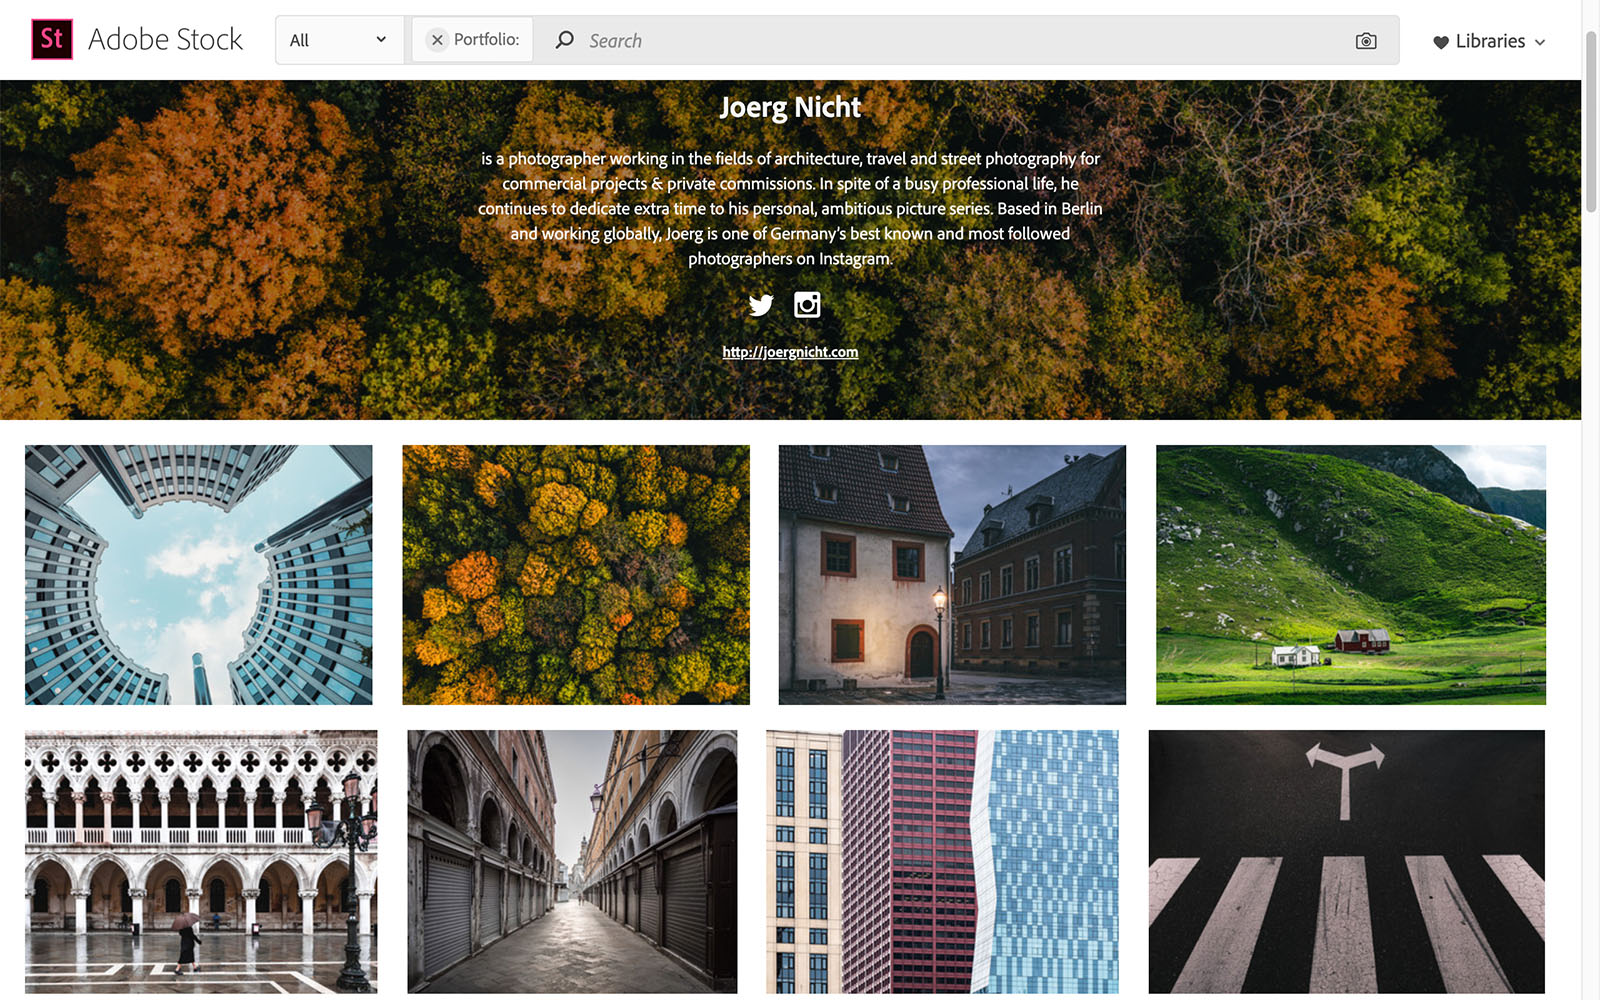 Jörg Nicht Adobe Stock Portfolio Screenshot